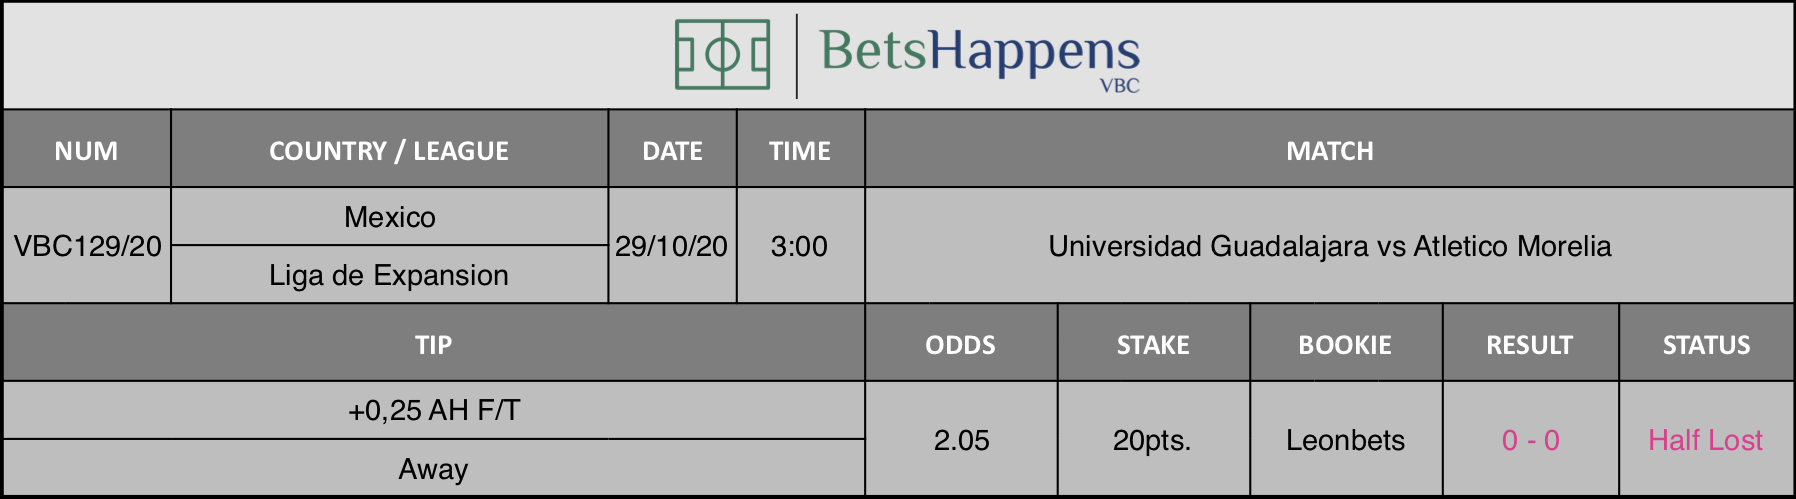 Results of our tip for the Universidad Guadalajara vs Atletico Morelia  match where +0,25 AH F/T Away is recommended.